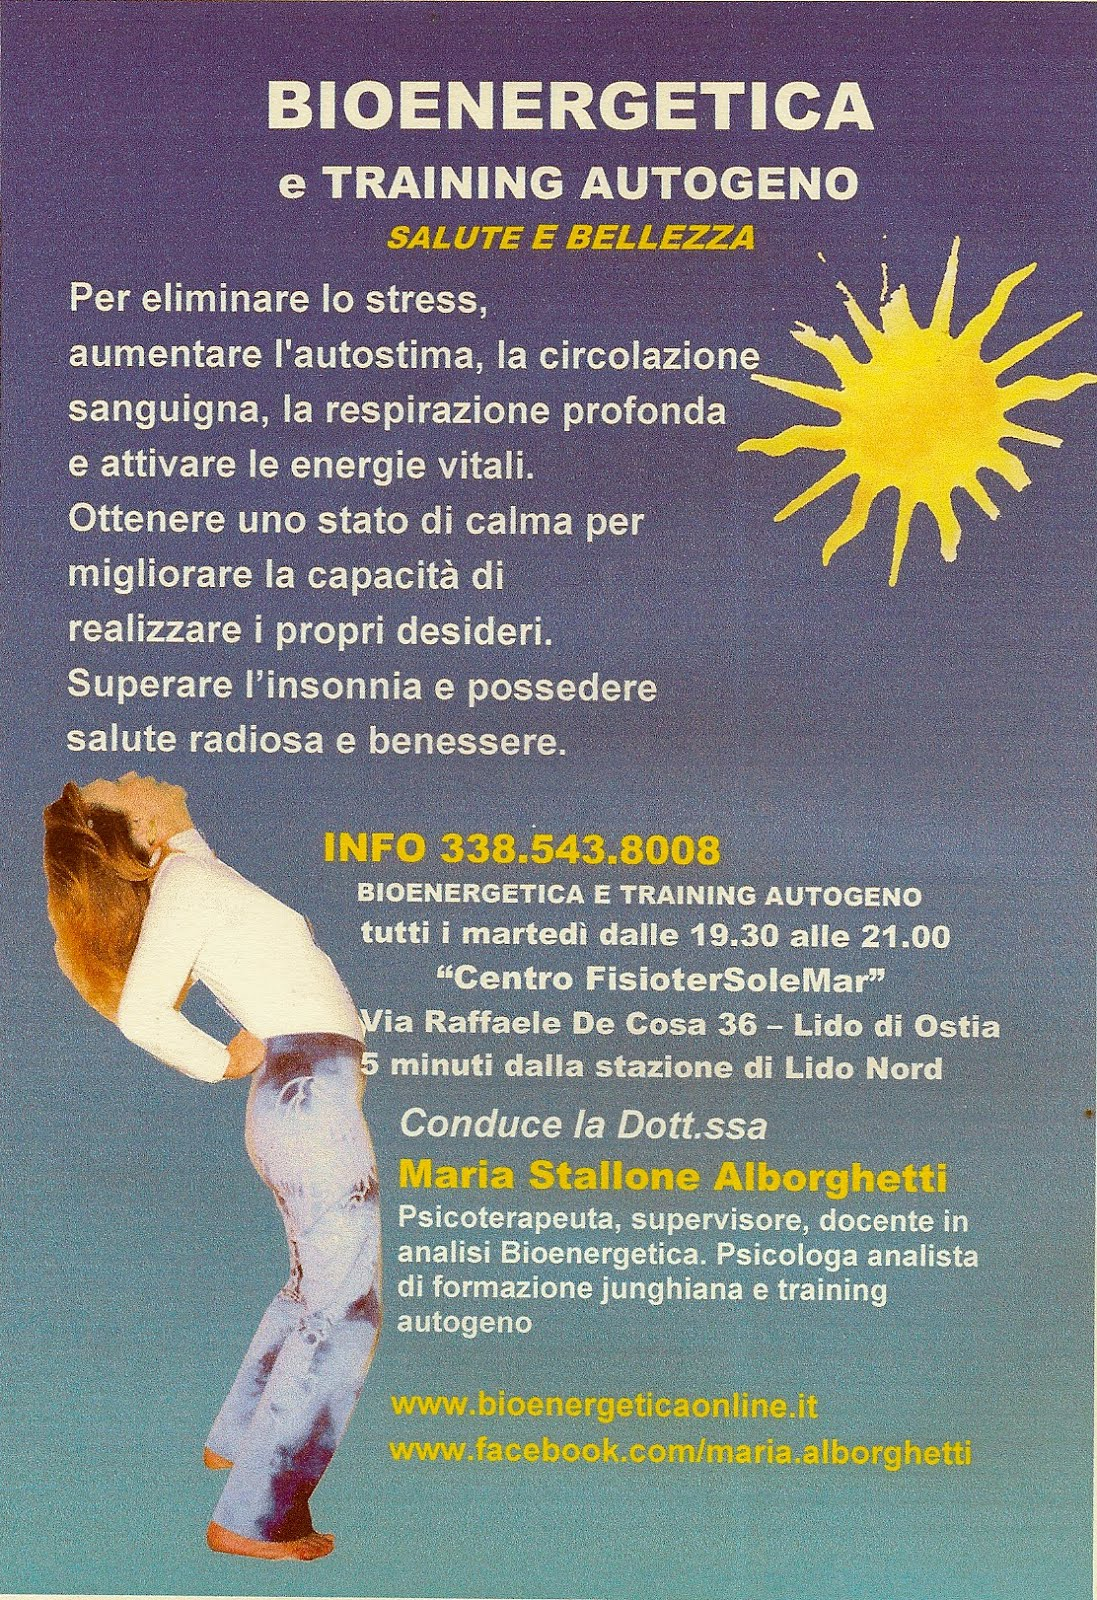 BIOENERGETICA e training autogeno